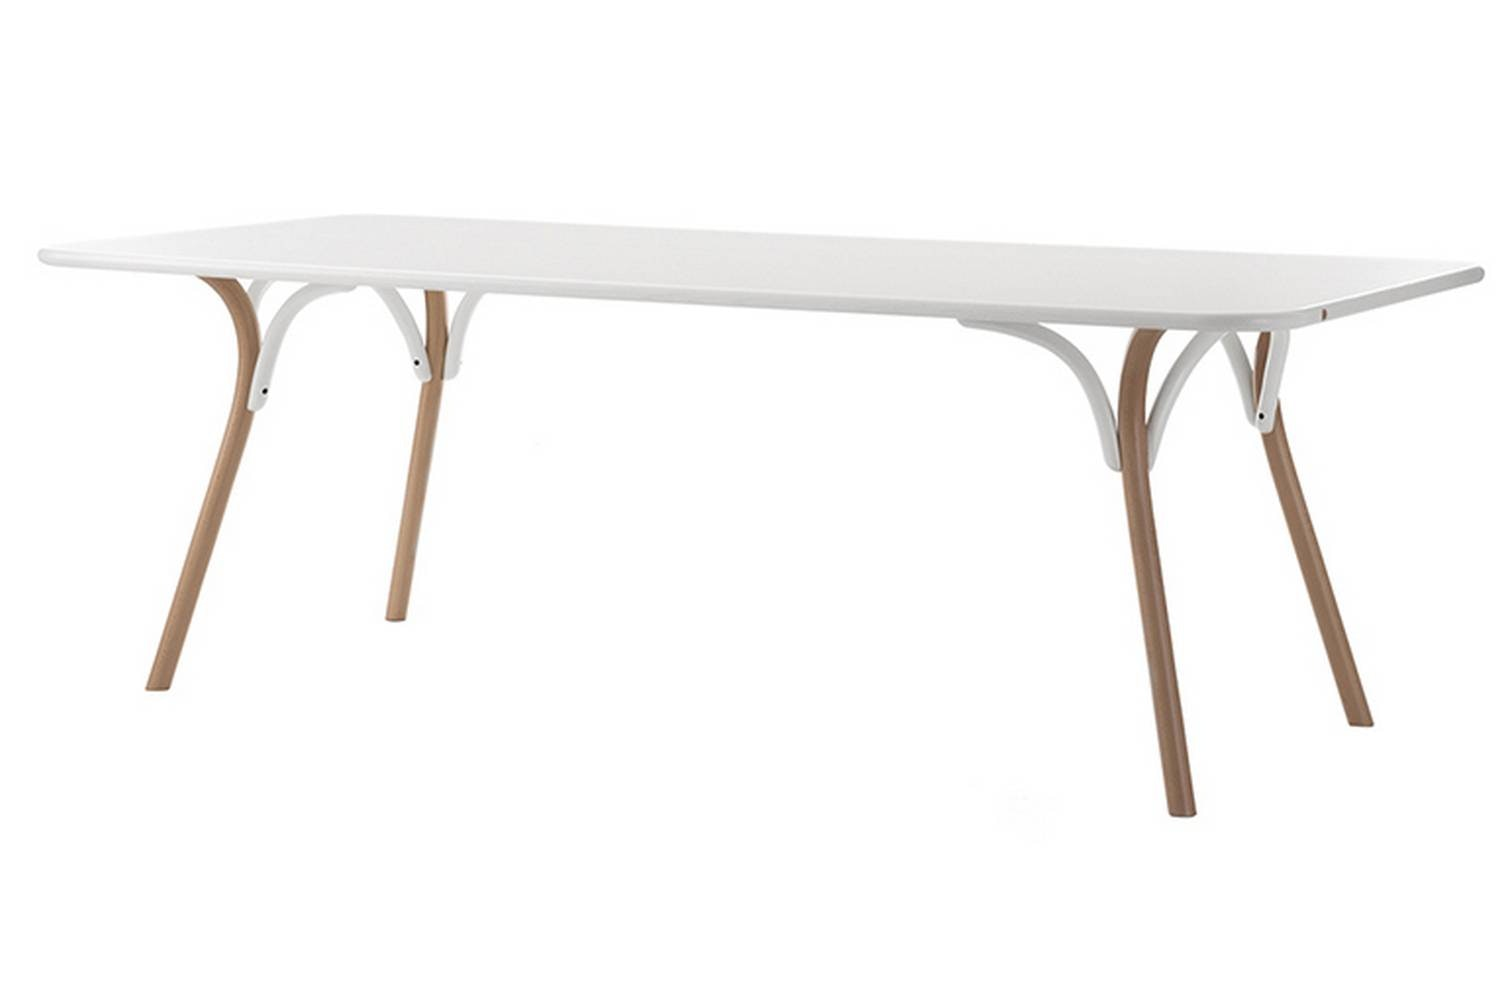 Arch Dining Table by Front for Wiener GTV Design